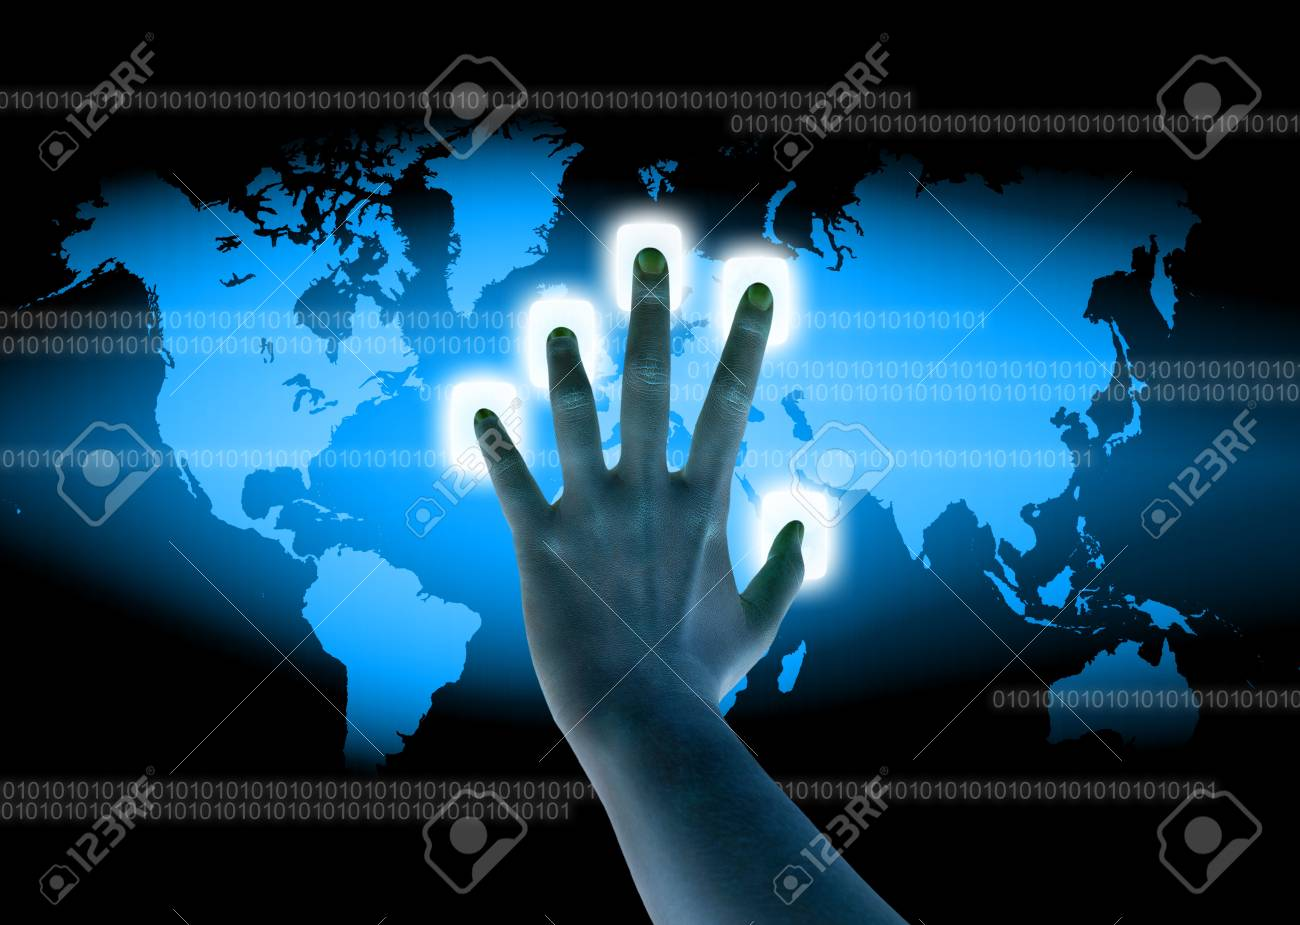 scanning of a finger on a touch screen interface Stock Photo - 12775695